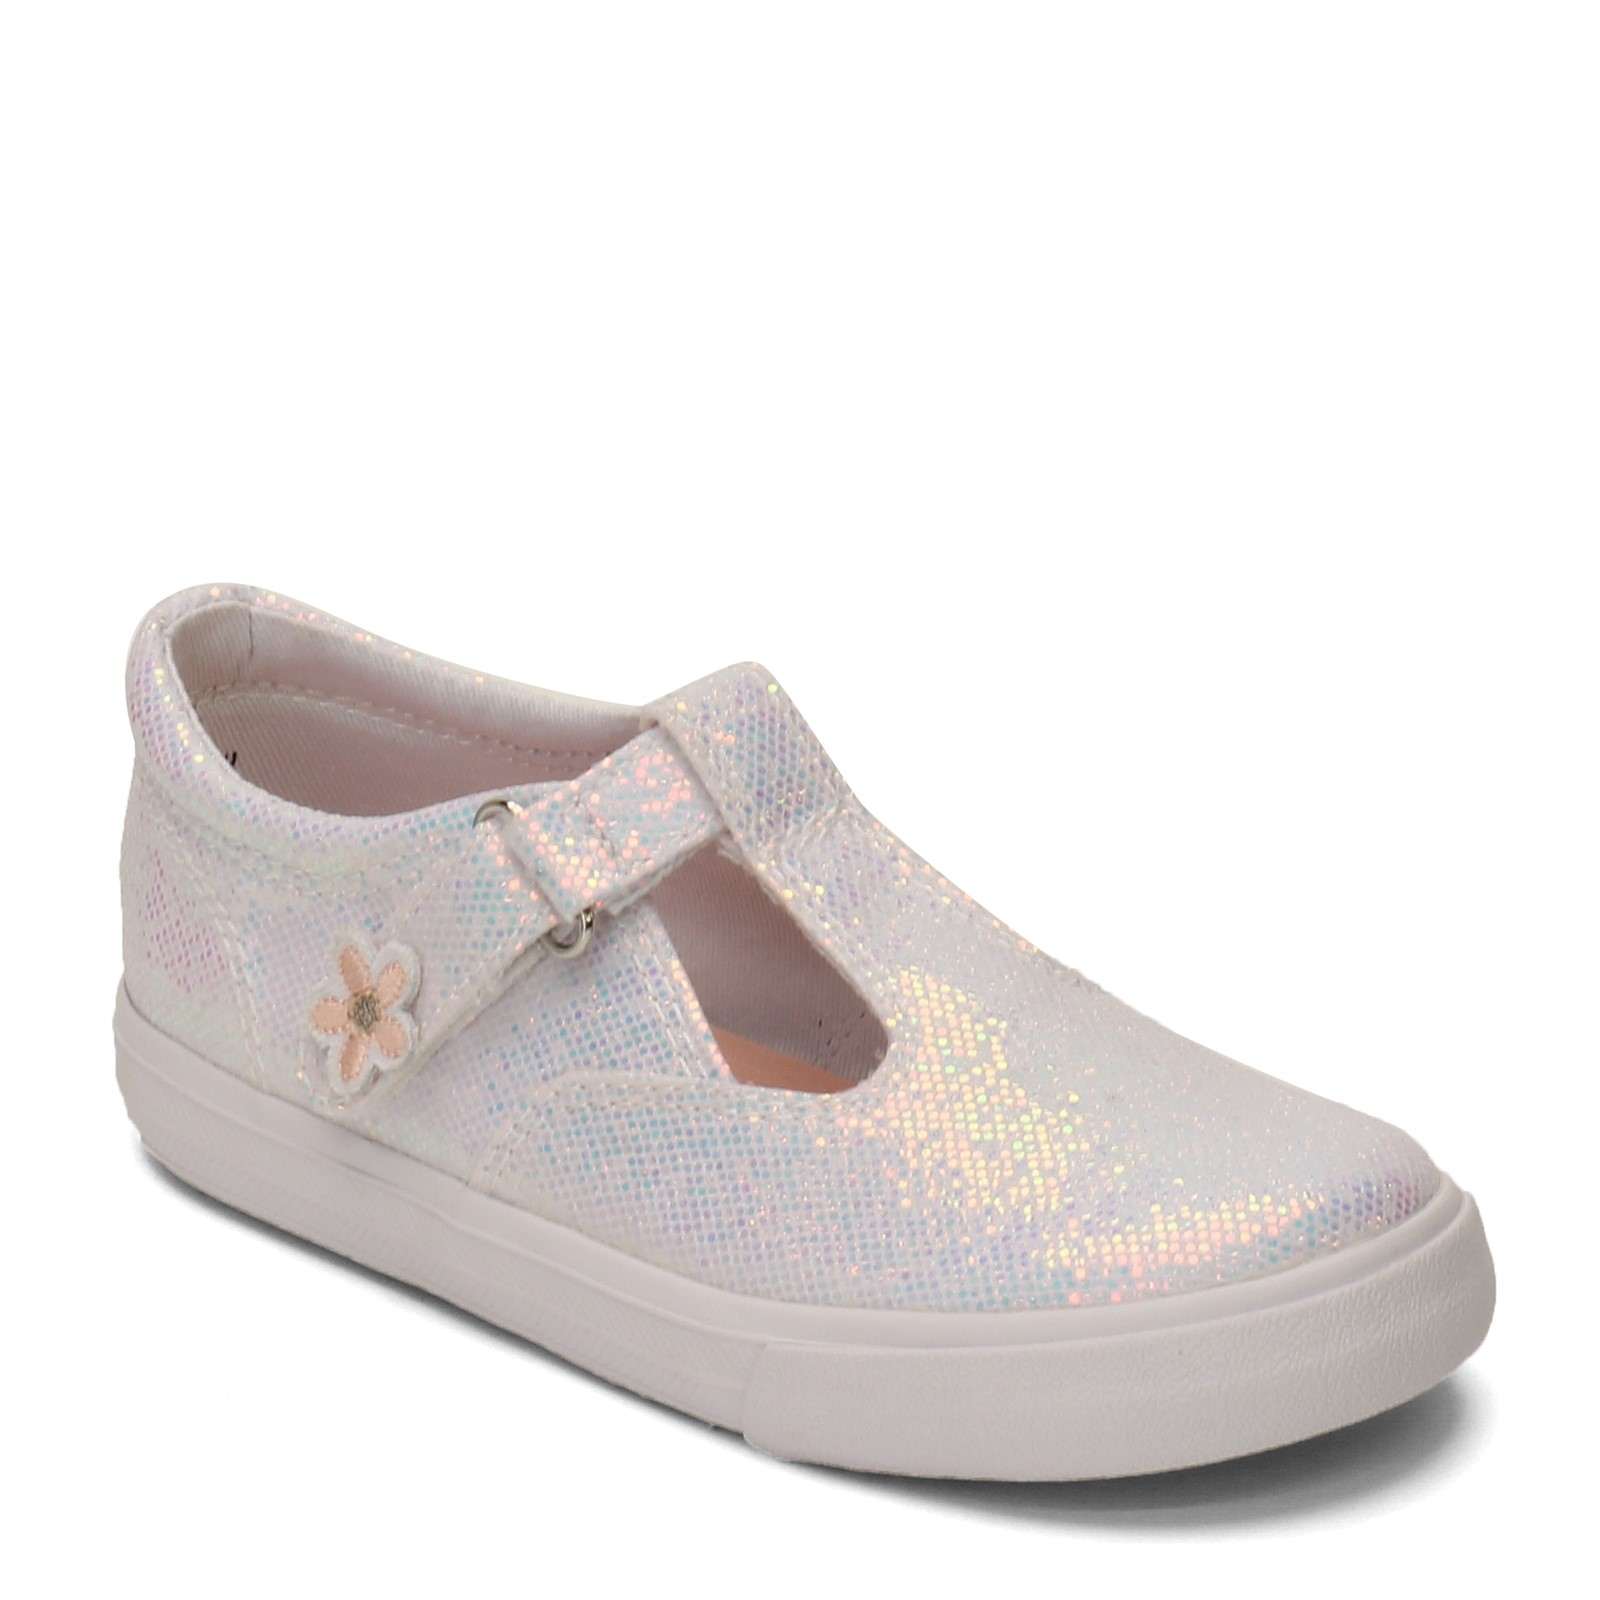 keds shoes for toddlers